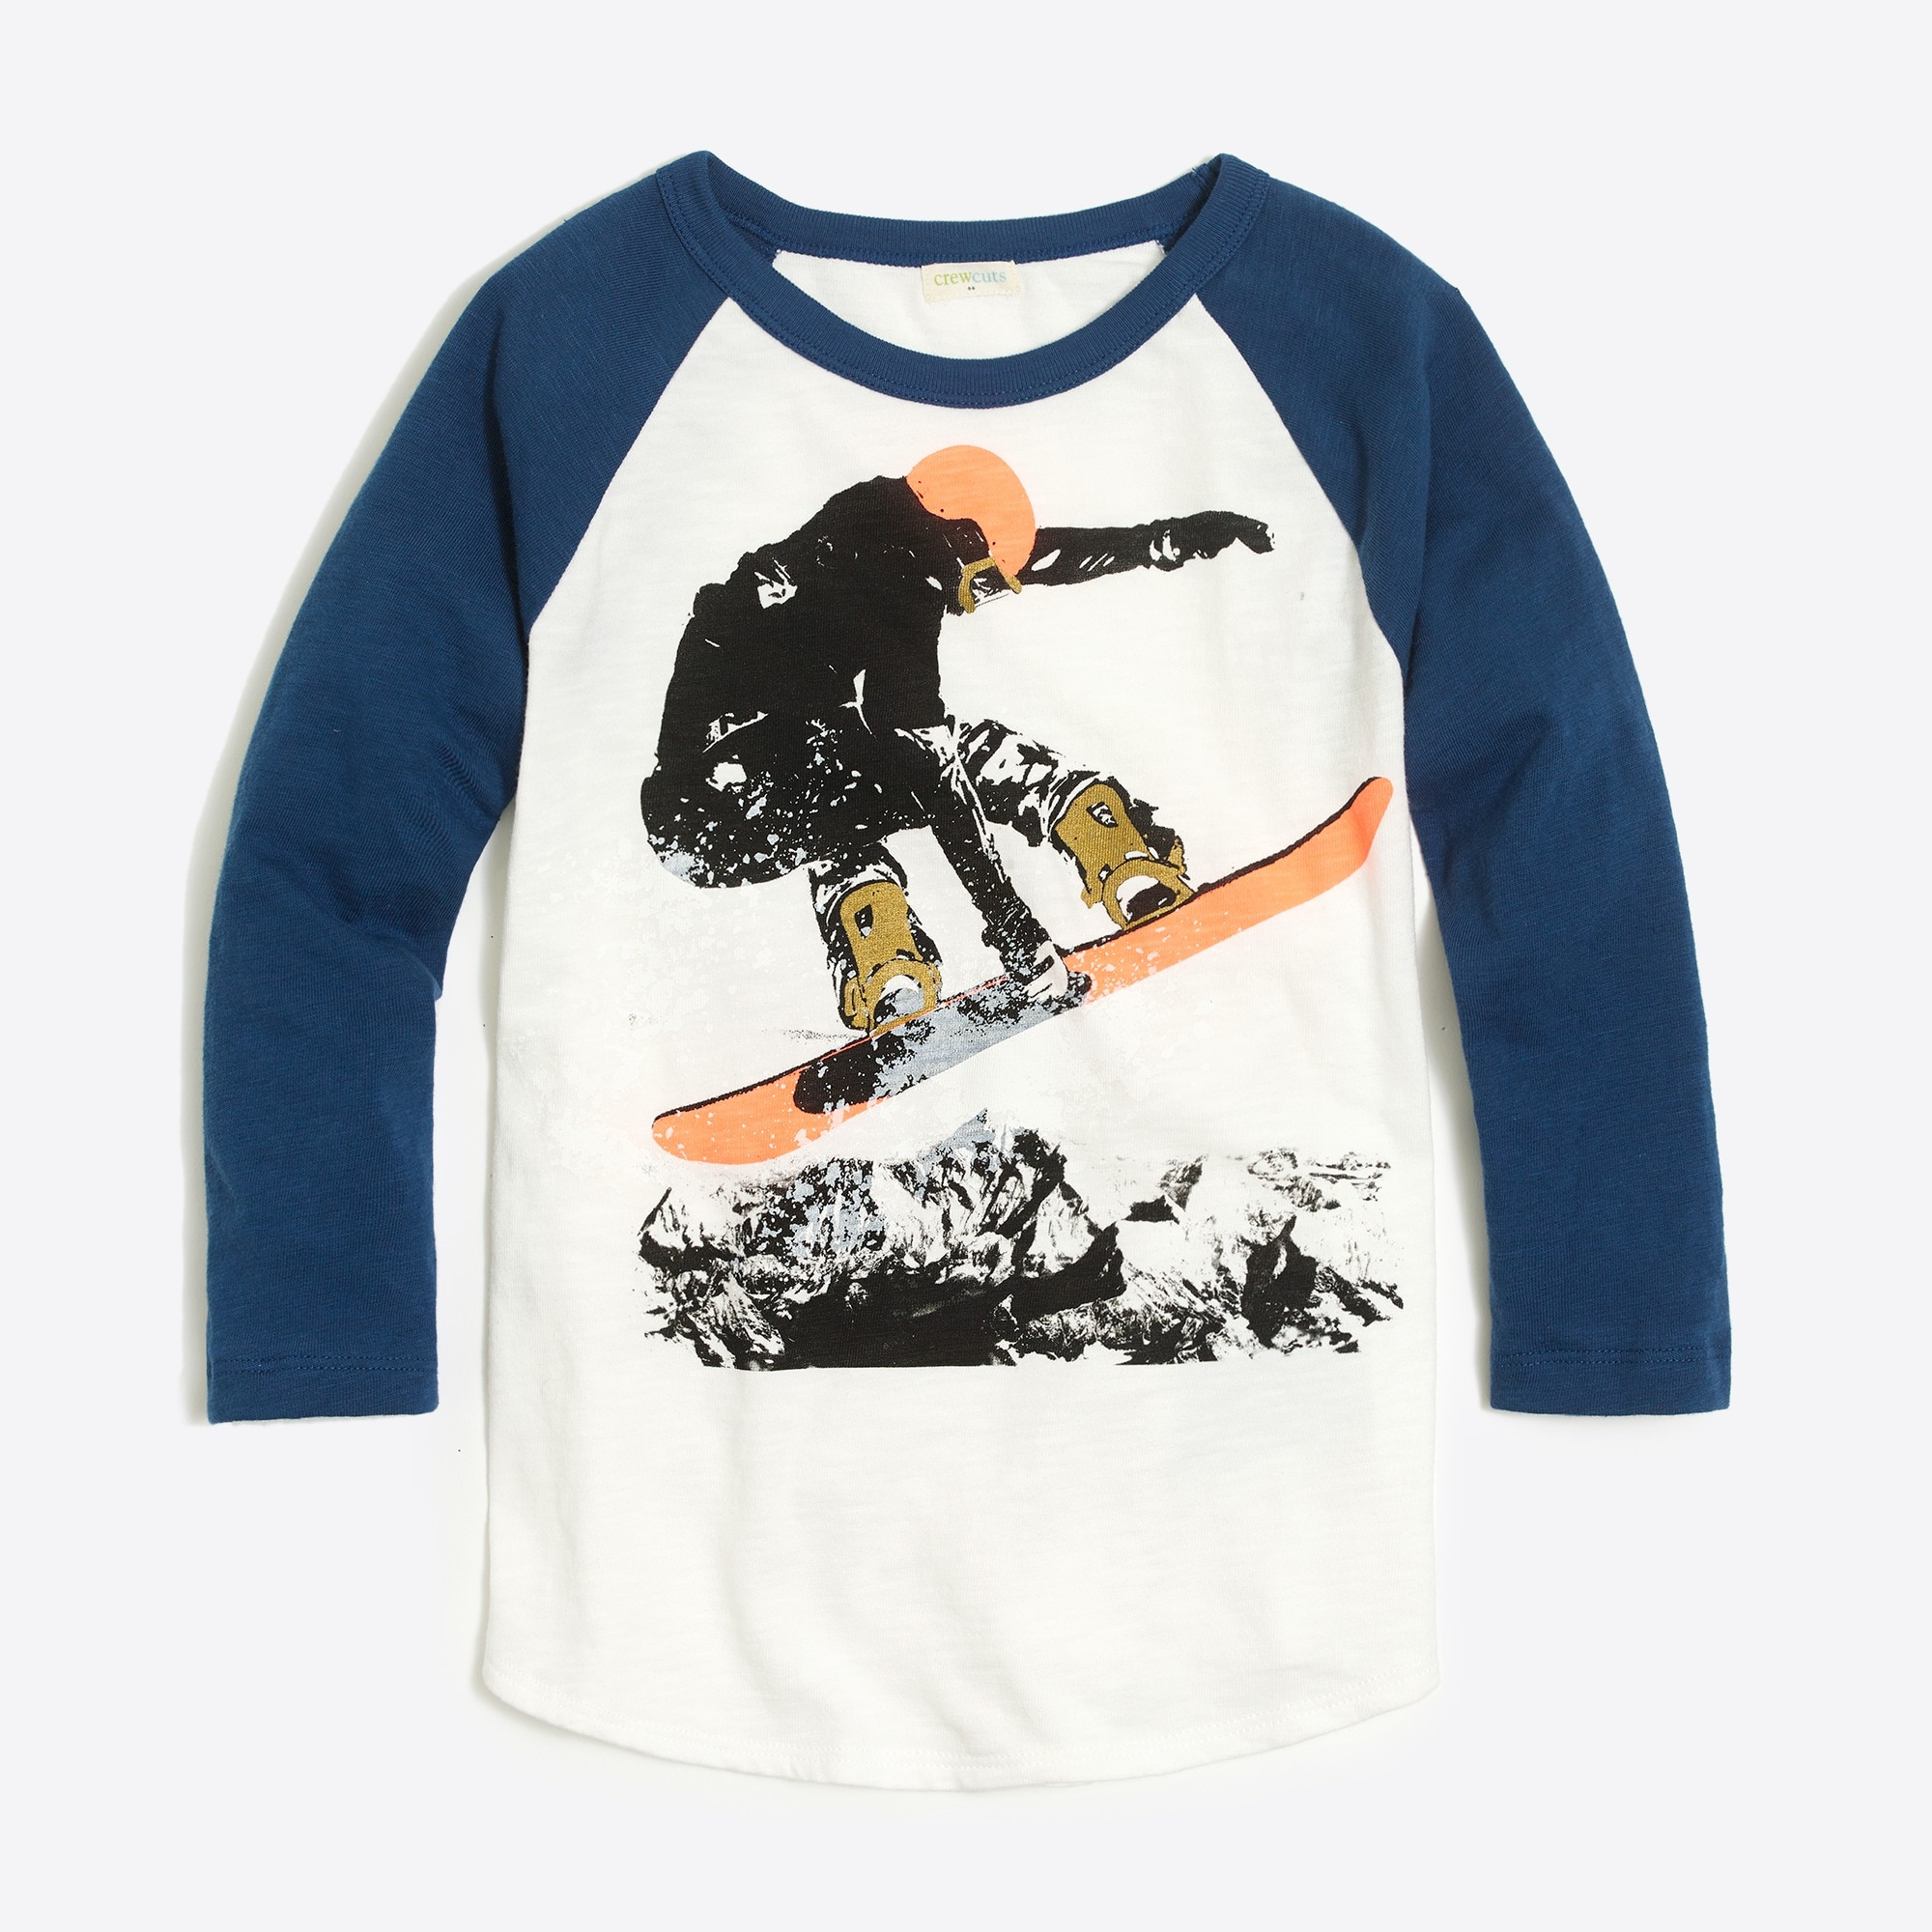 Boys' raglan sleeve snowboarder graphic T-shirt